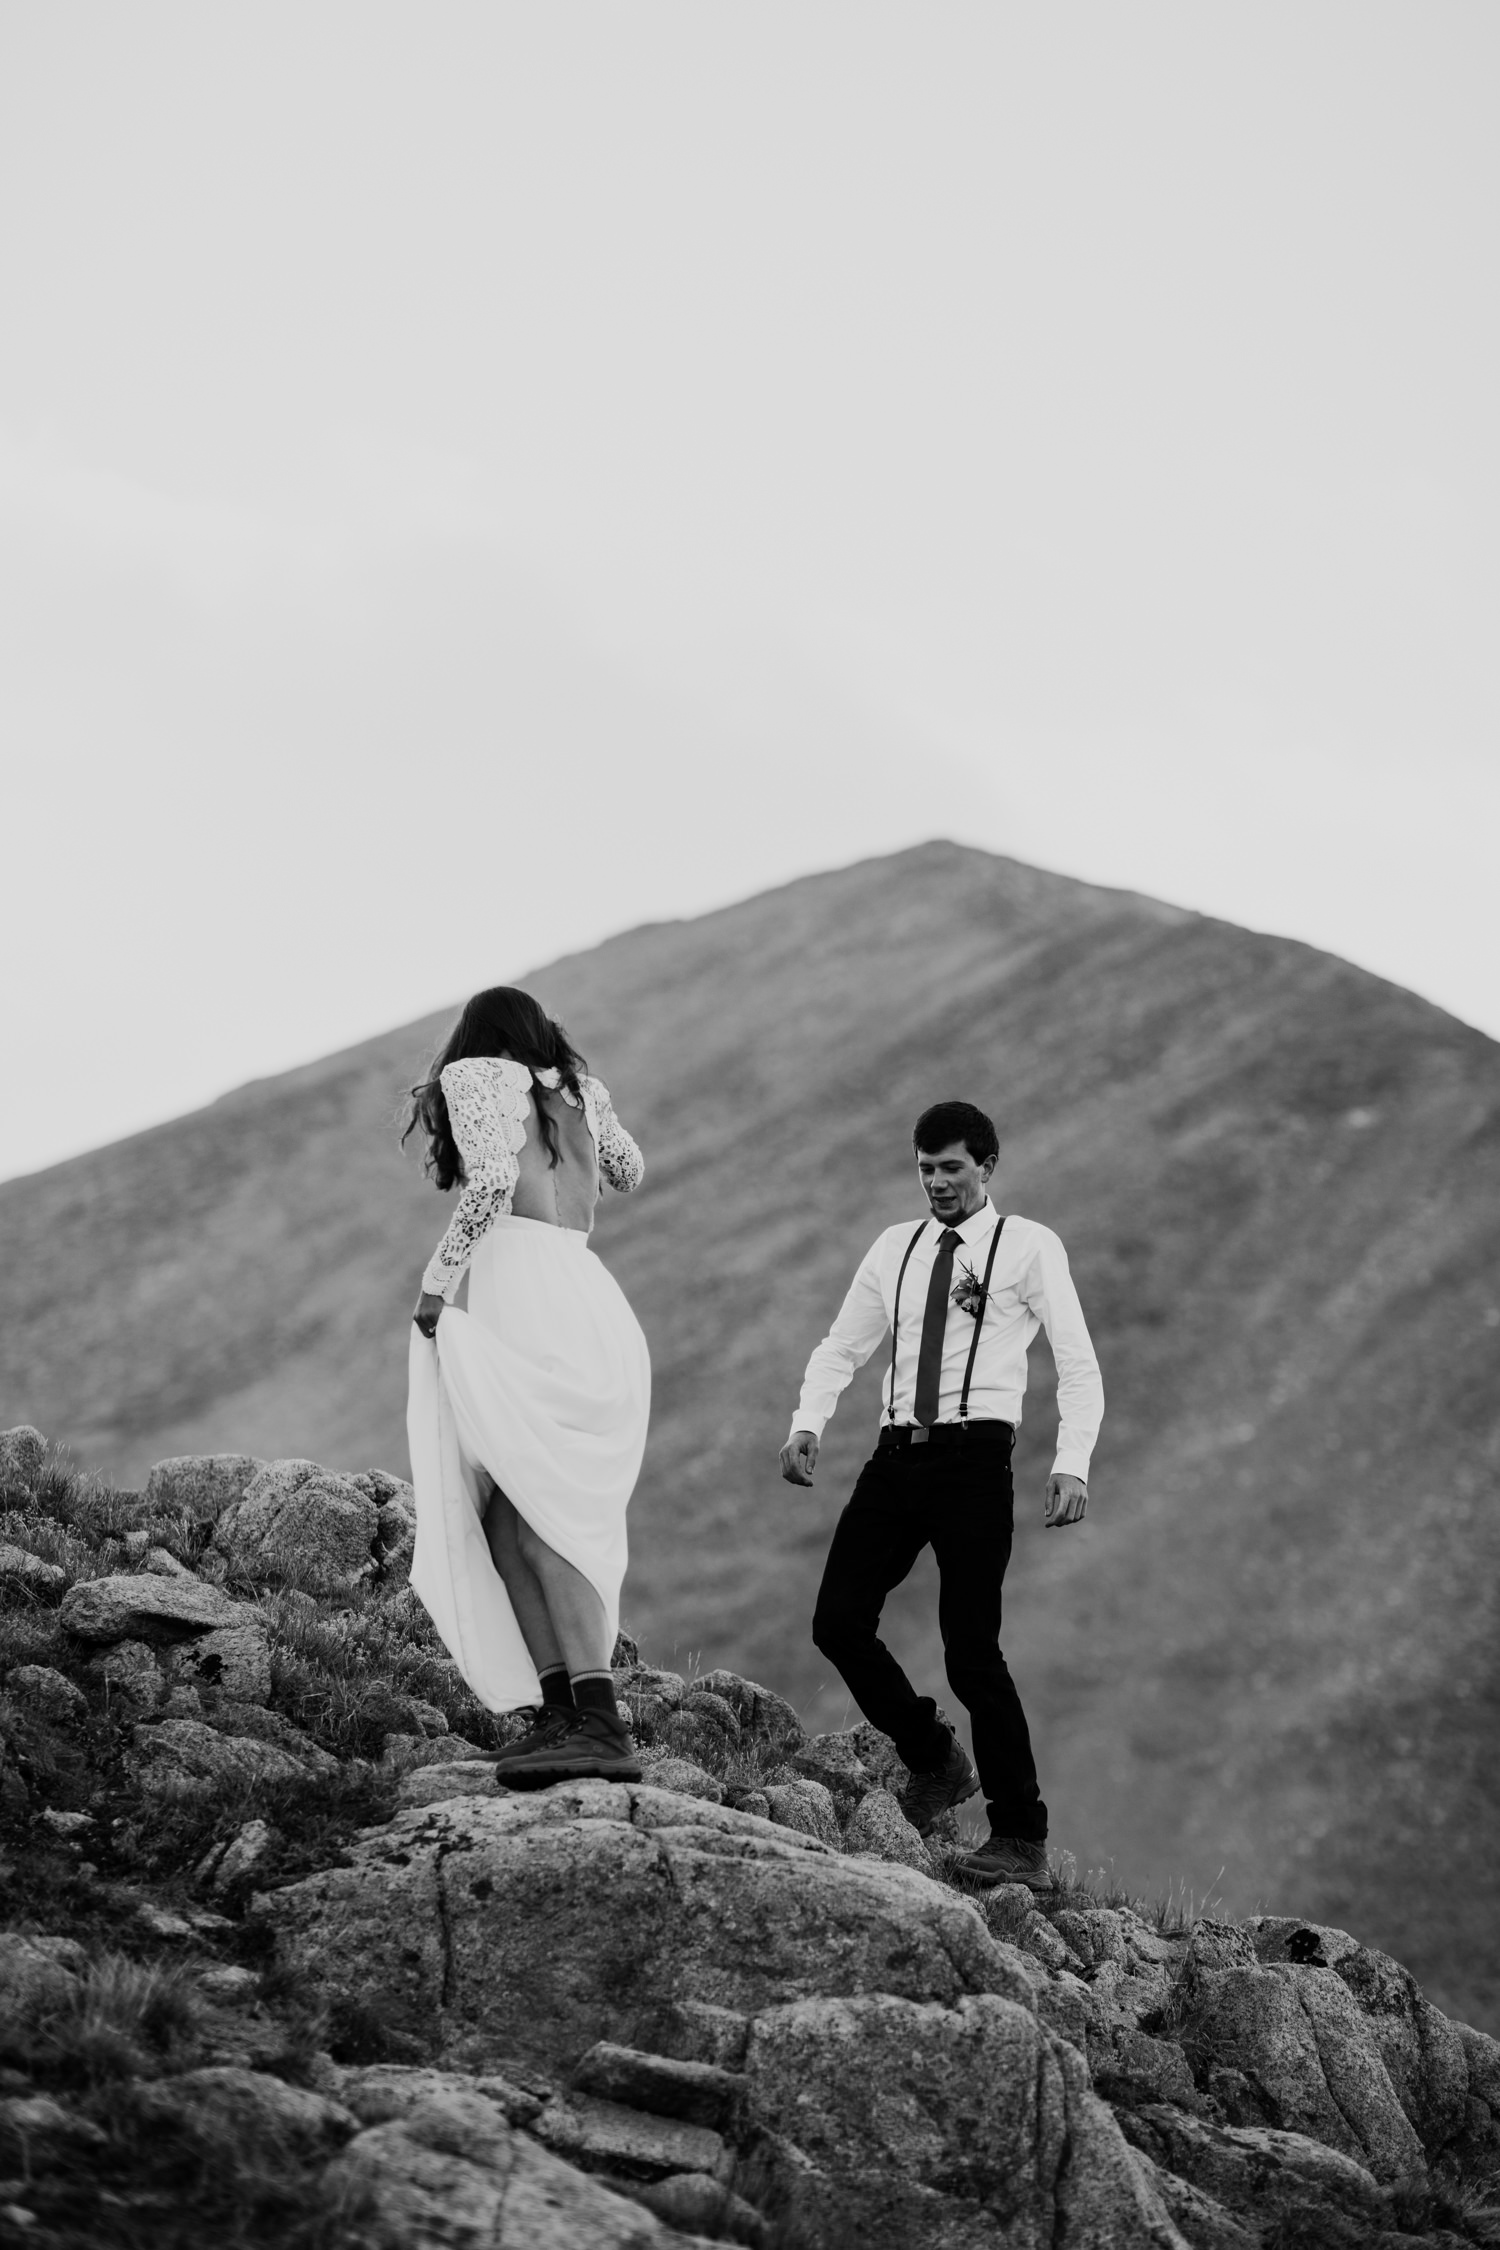 fourteener-adventure-wedding-photographer-19.jpg